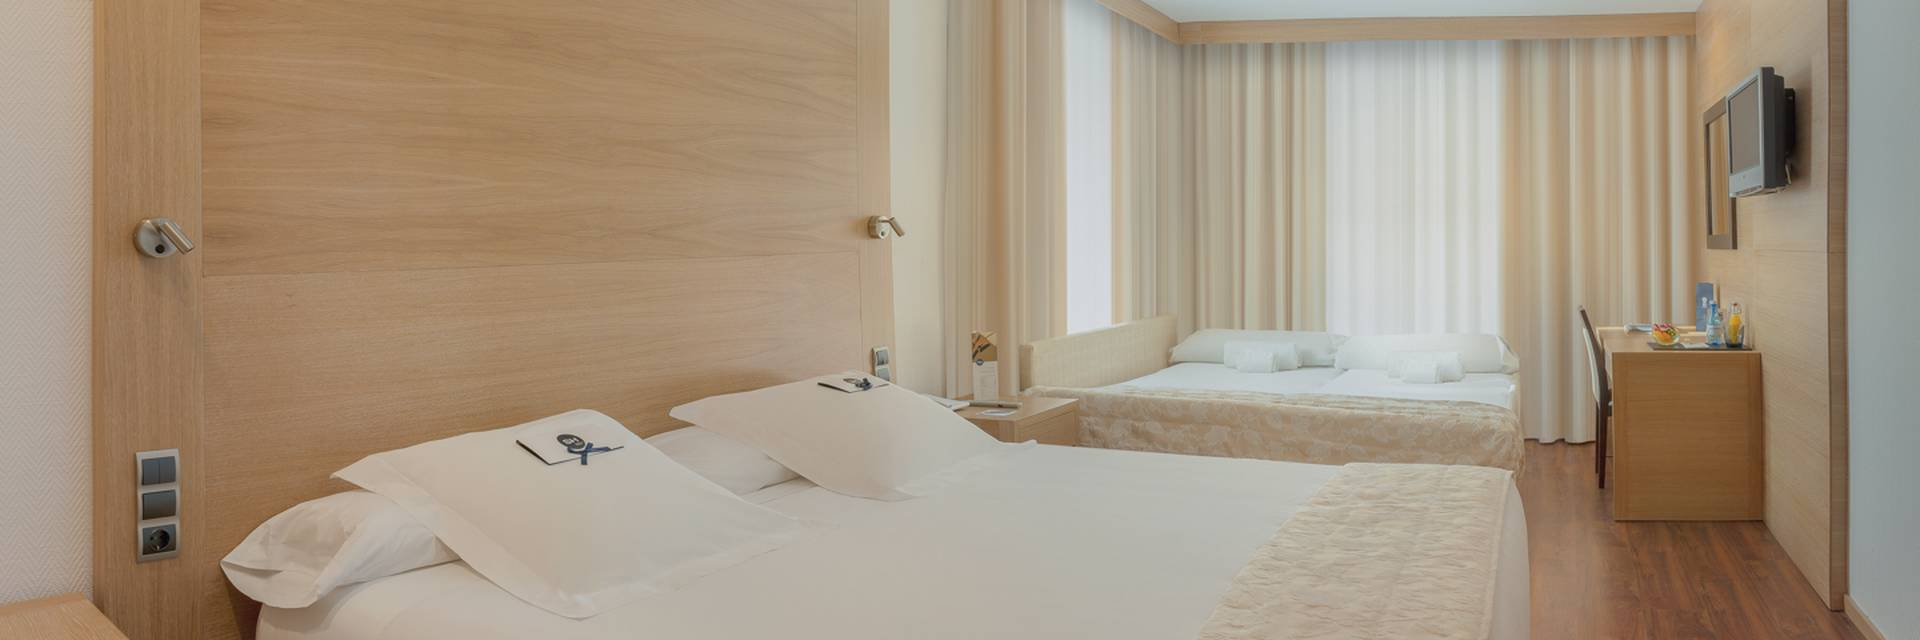 Sh hotels offers sh villa gadea hotel altea